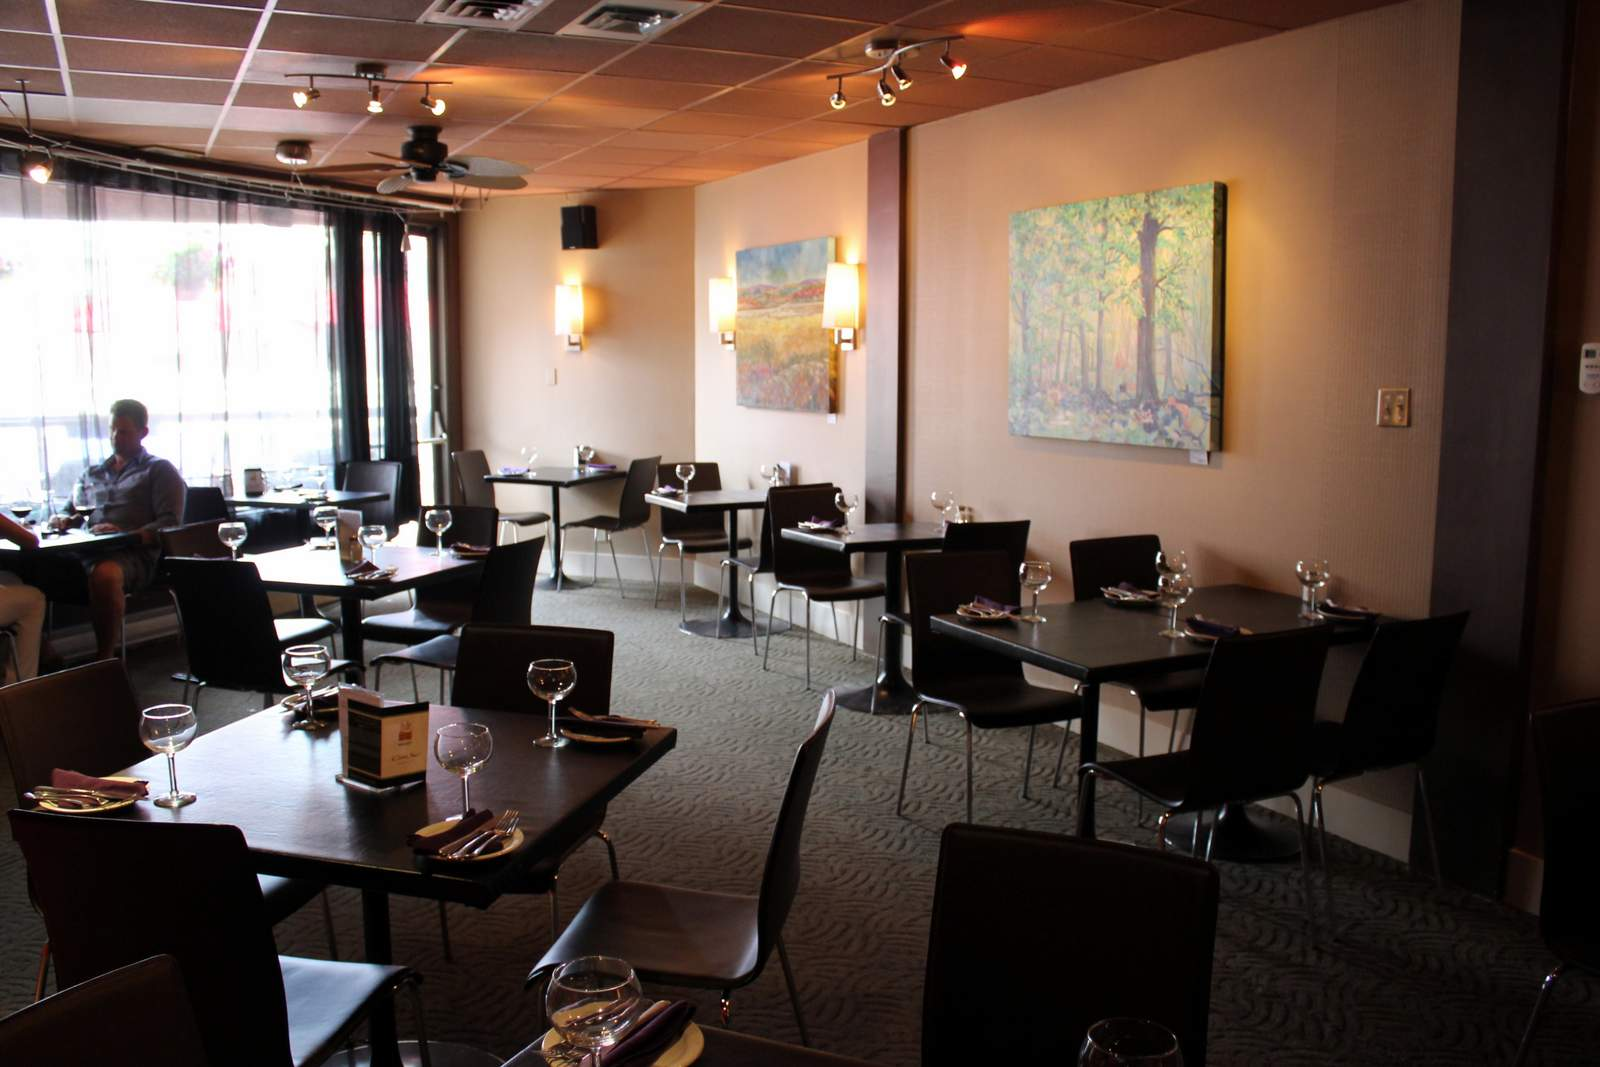 Winnipeg Restaurant- Fude inspired cuisine and wine bar-0001